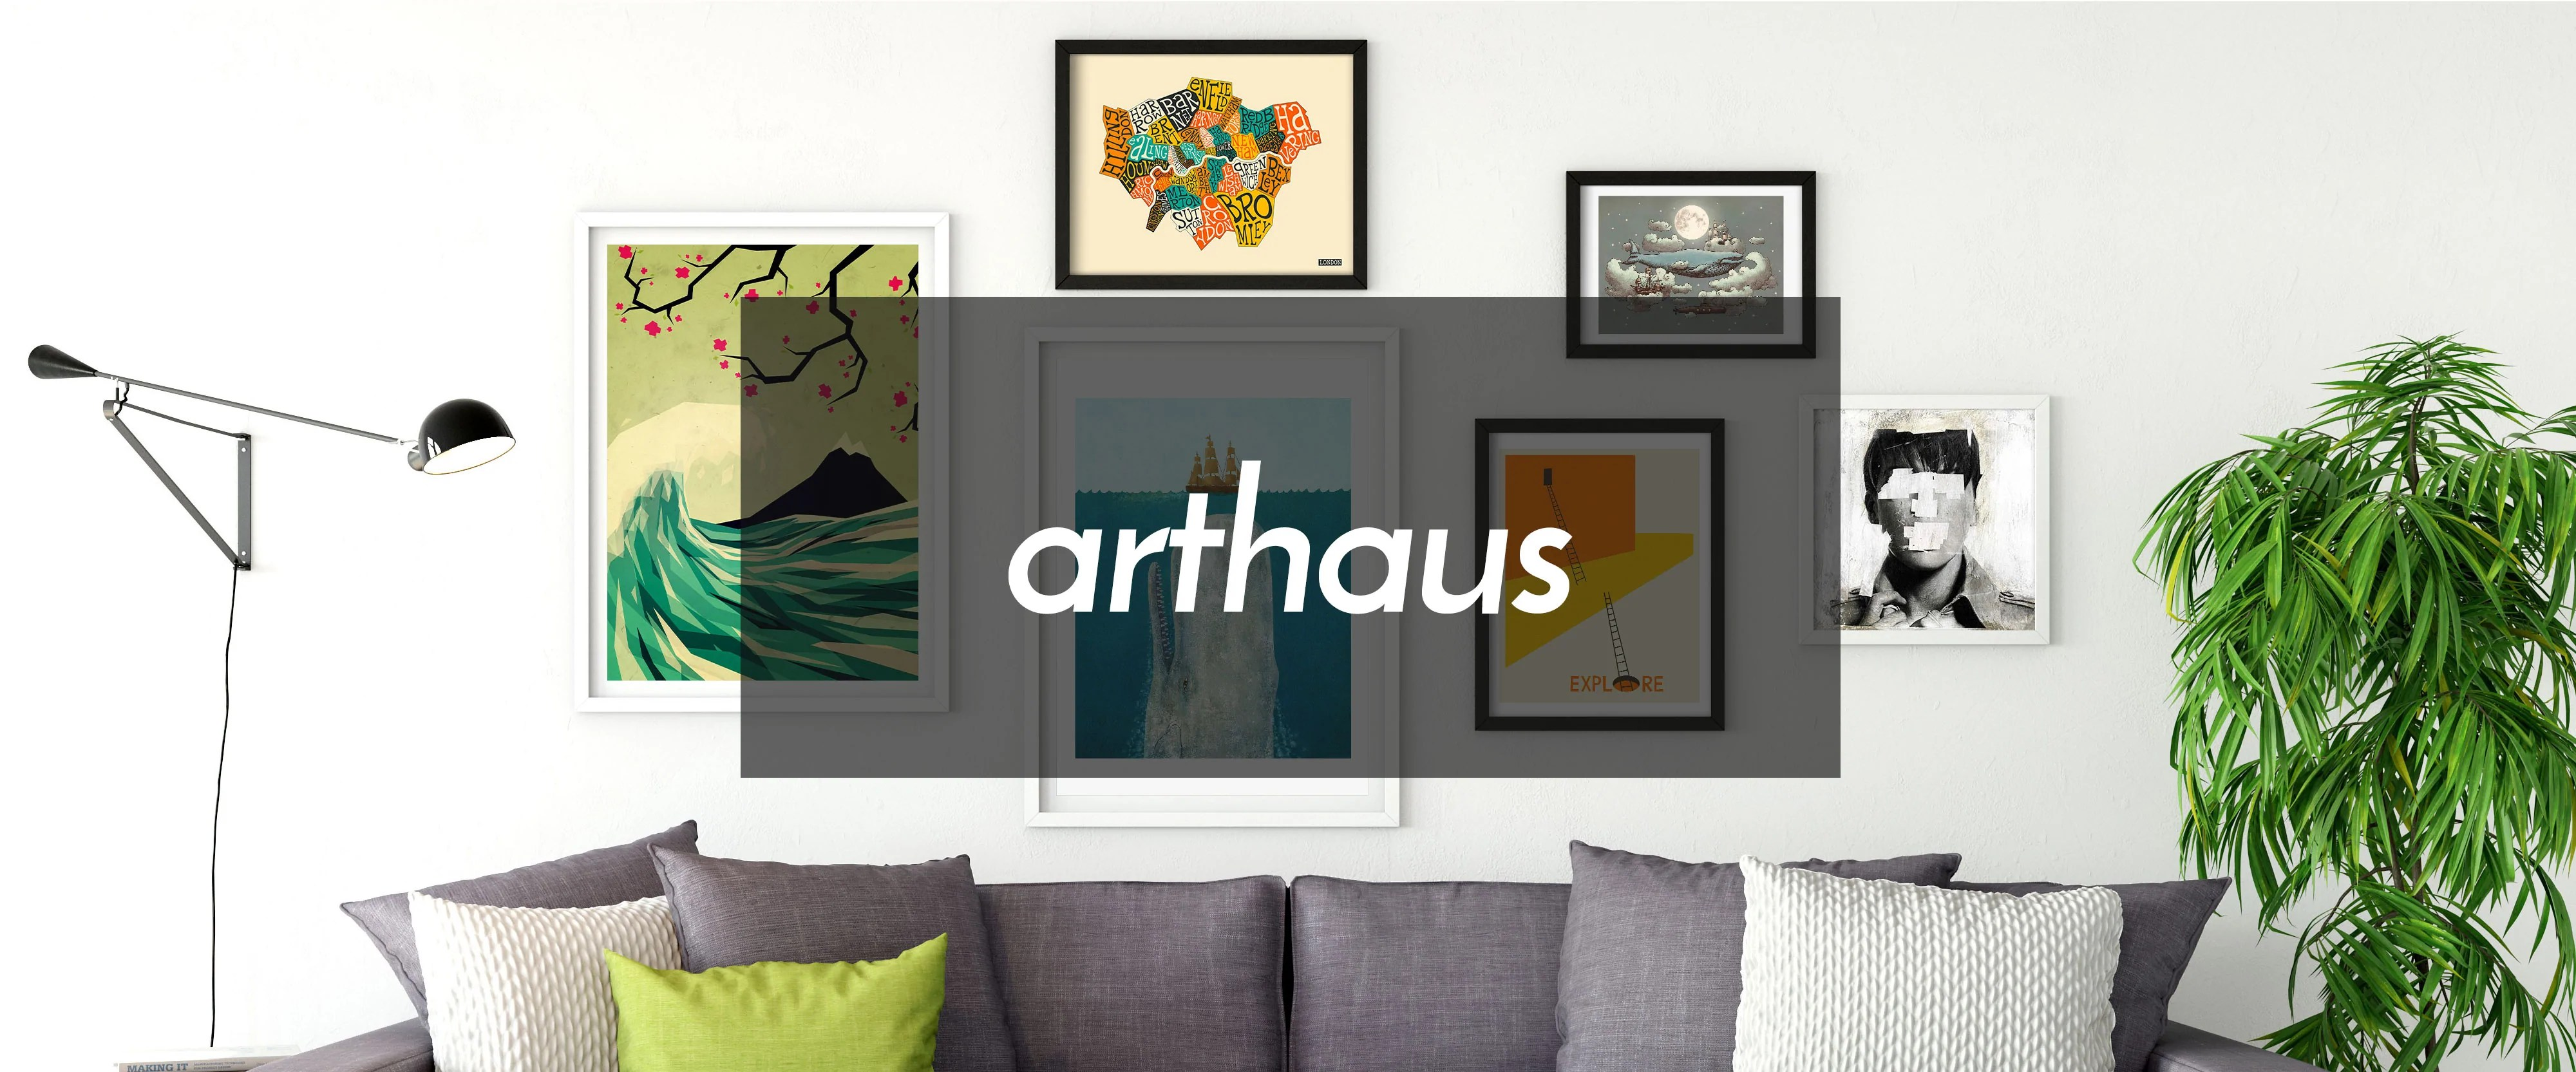 framed wall pictures for living room ireland modern moroccan inspired buy posters and prints online arthaus the art store